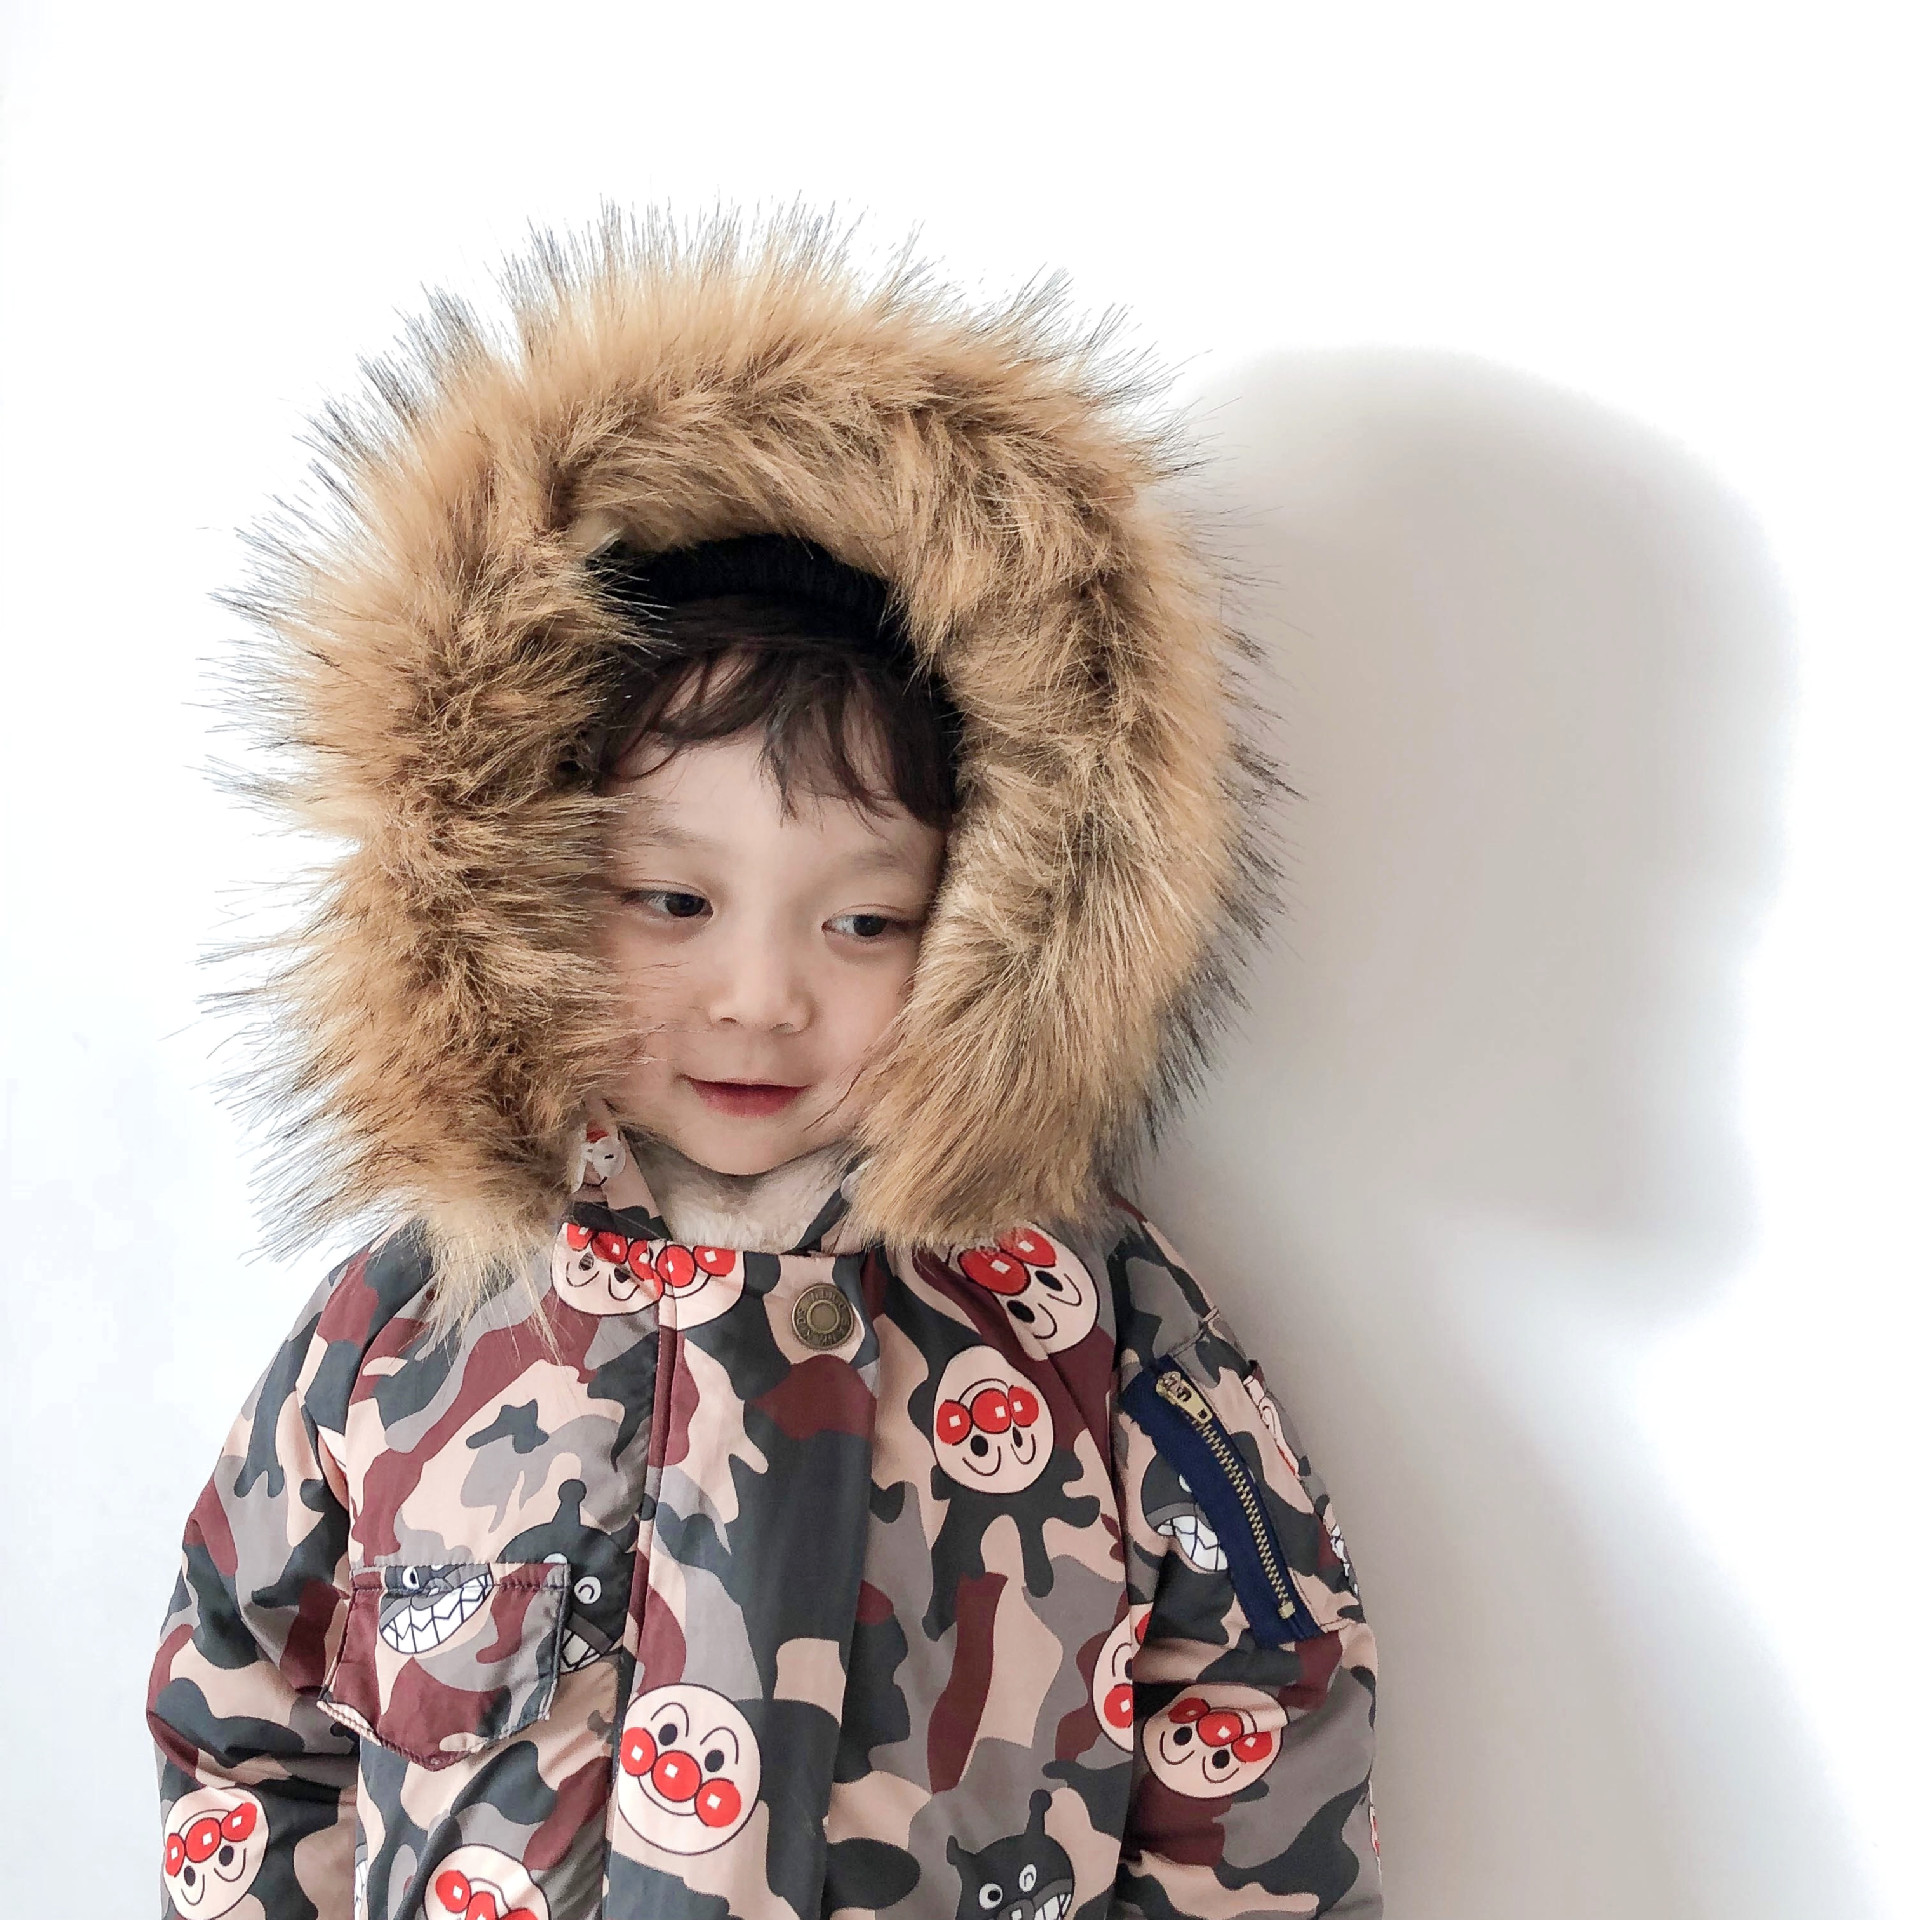 BOBO CHOSES BOYS WINTER COAT WINTER JACKETS GIRL COAT FUR BABY BOY CLOTHES KIDS WINTER JACKETS KIDS WINTER JACKET BOYS COAT baby boys girls jackets 2018 new winter fashion fur collar jacket kids warm hoodies children outwear kids coat boys girl clothes